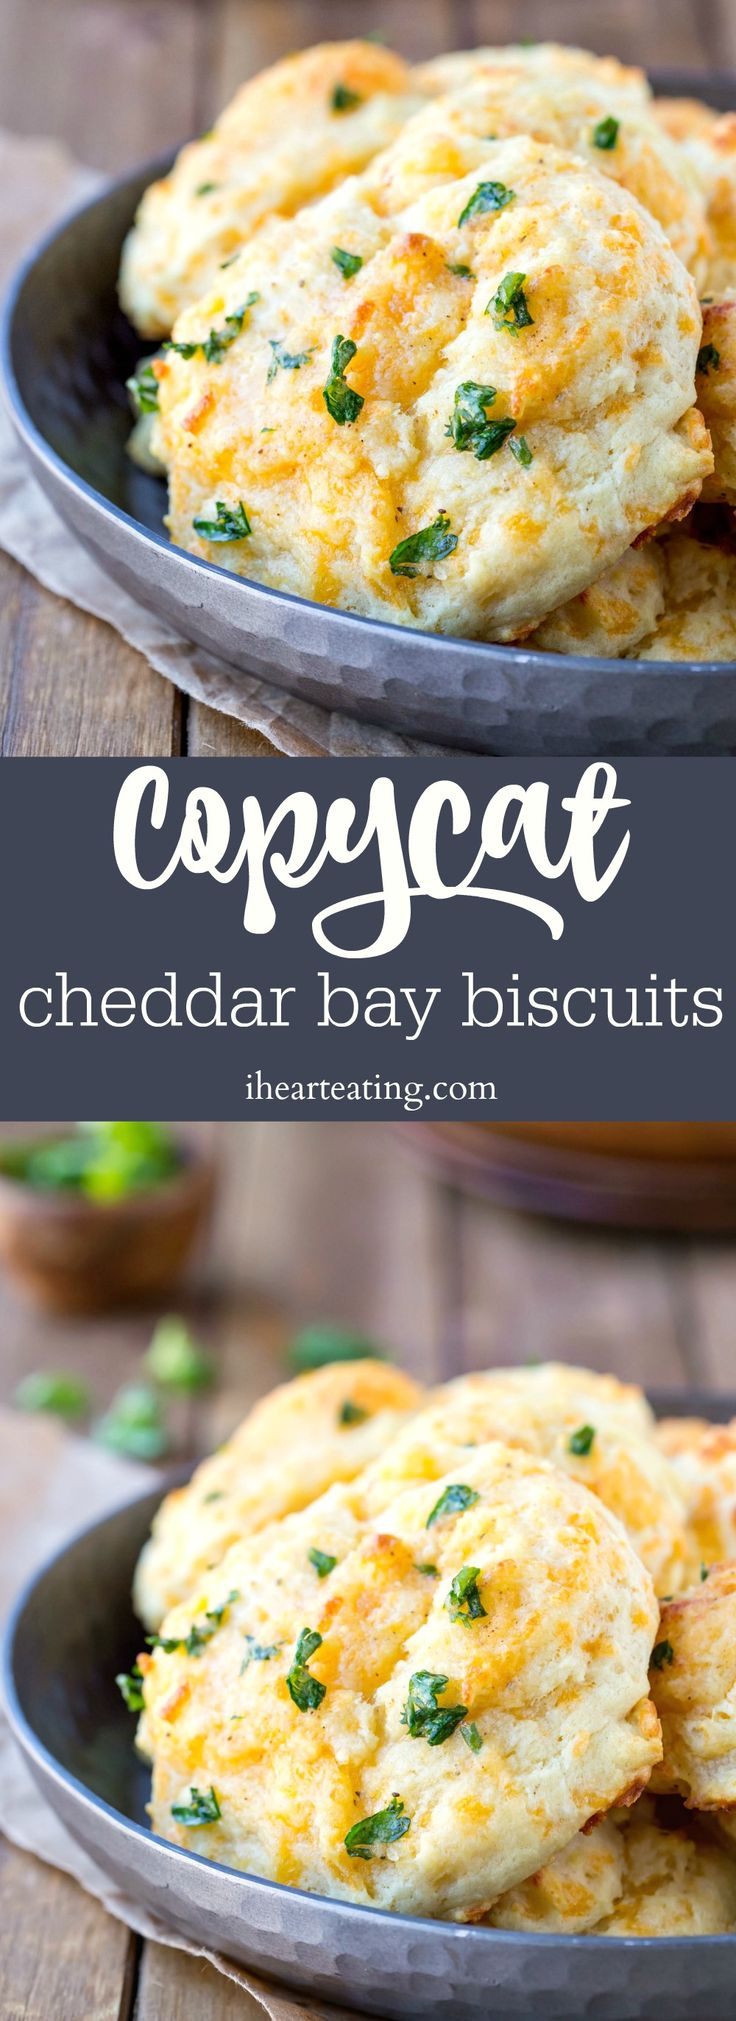 Copycat Cheddar Bay Biscuit Recipe is a simple cheddar garlic drop biscuit recipe that tastes just like the Red Lobster biscuits.